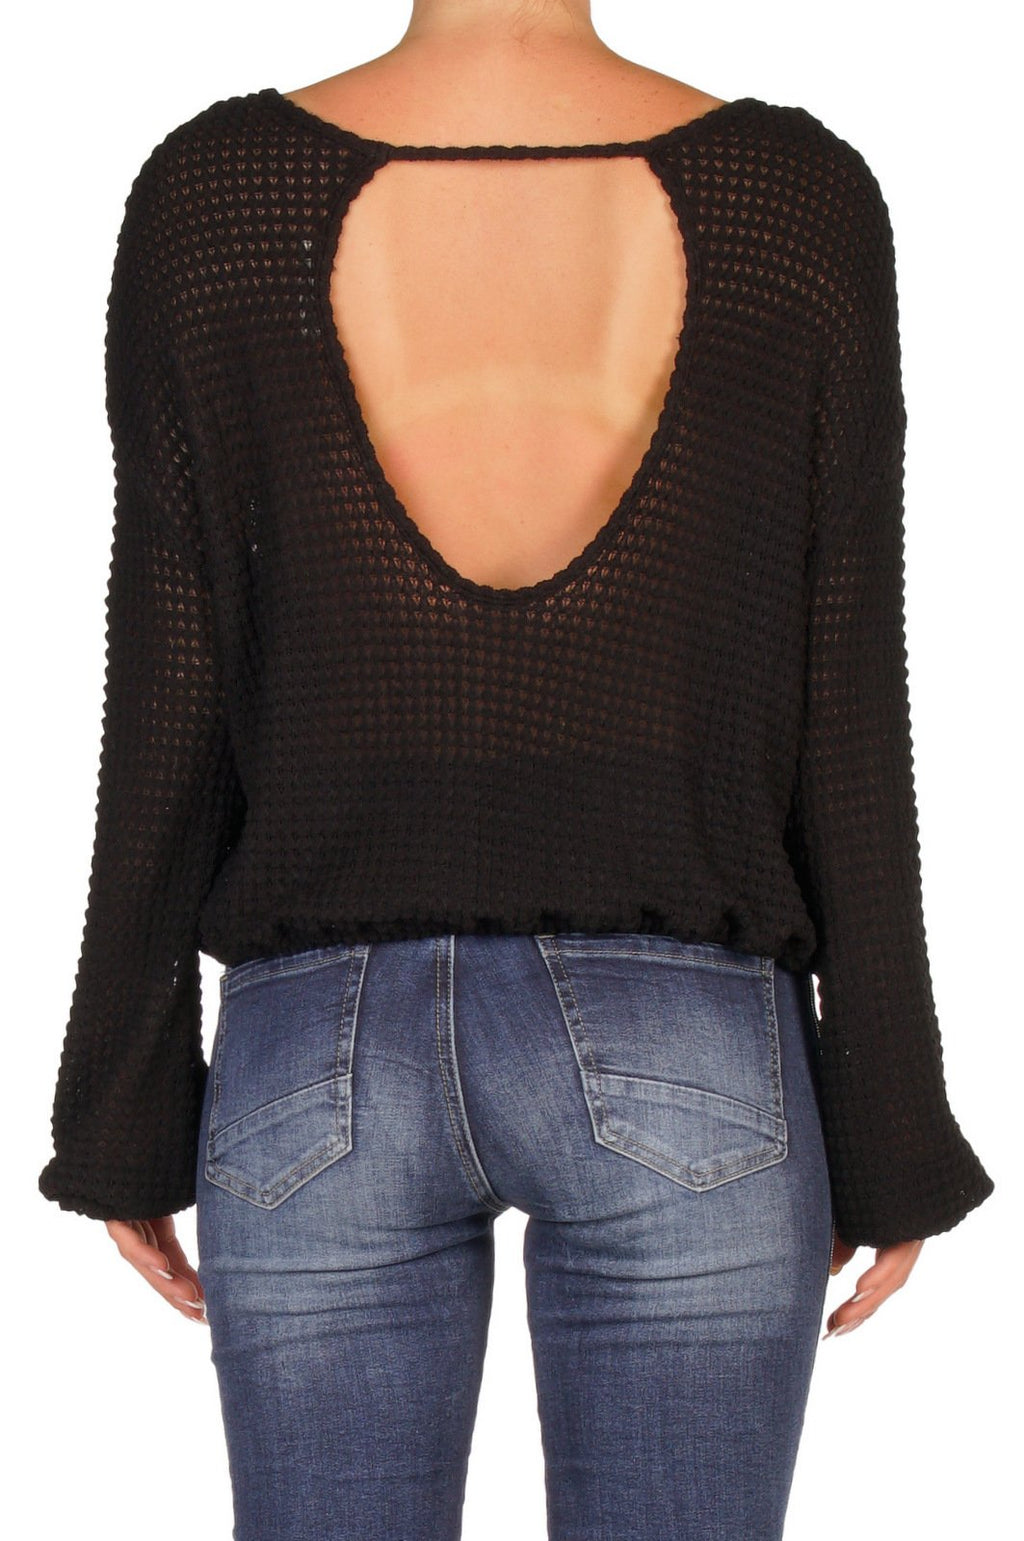 BLACK KNIT TOP